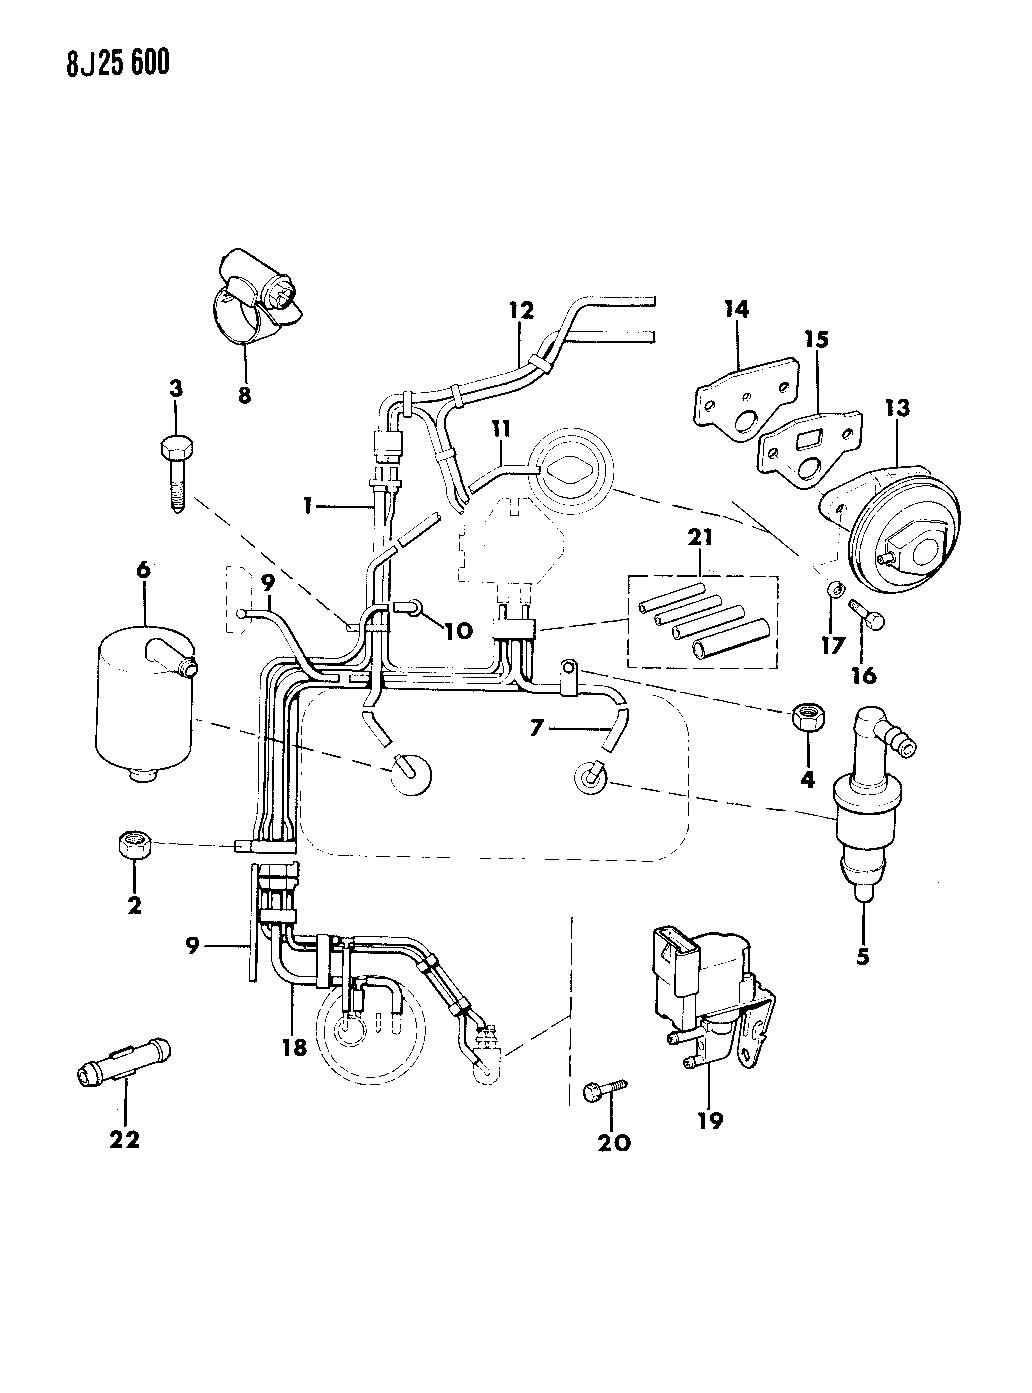 1987 Jeep Wrangler 4 2 Vacuum Diagram. Jeep. Auto Fuse Box